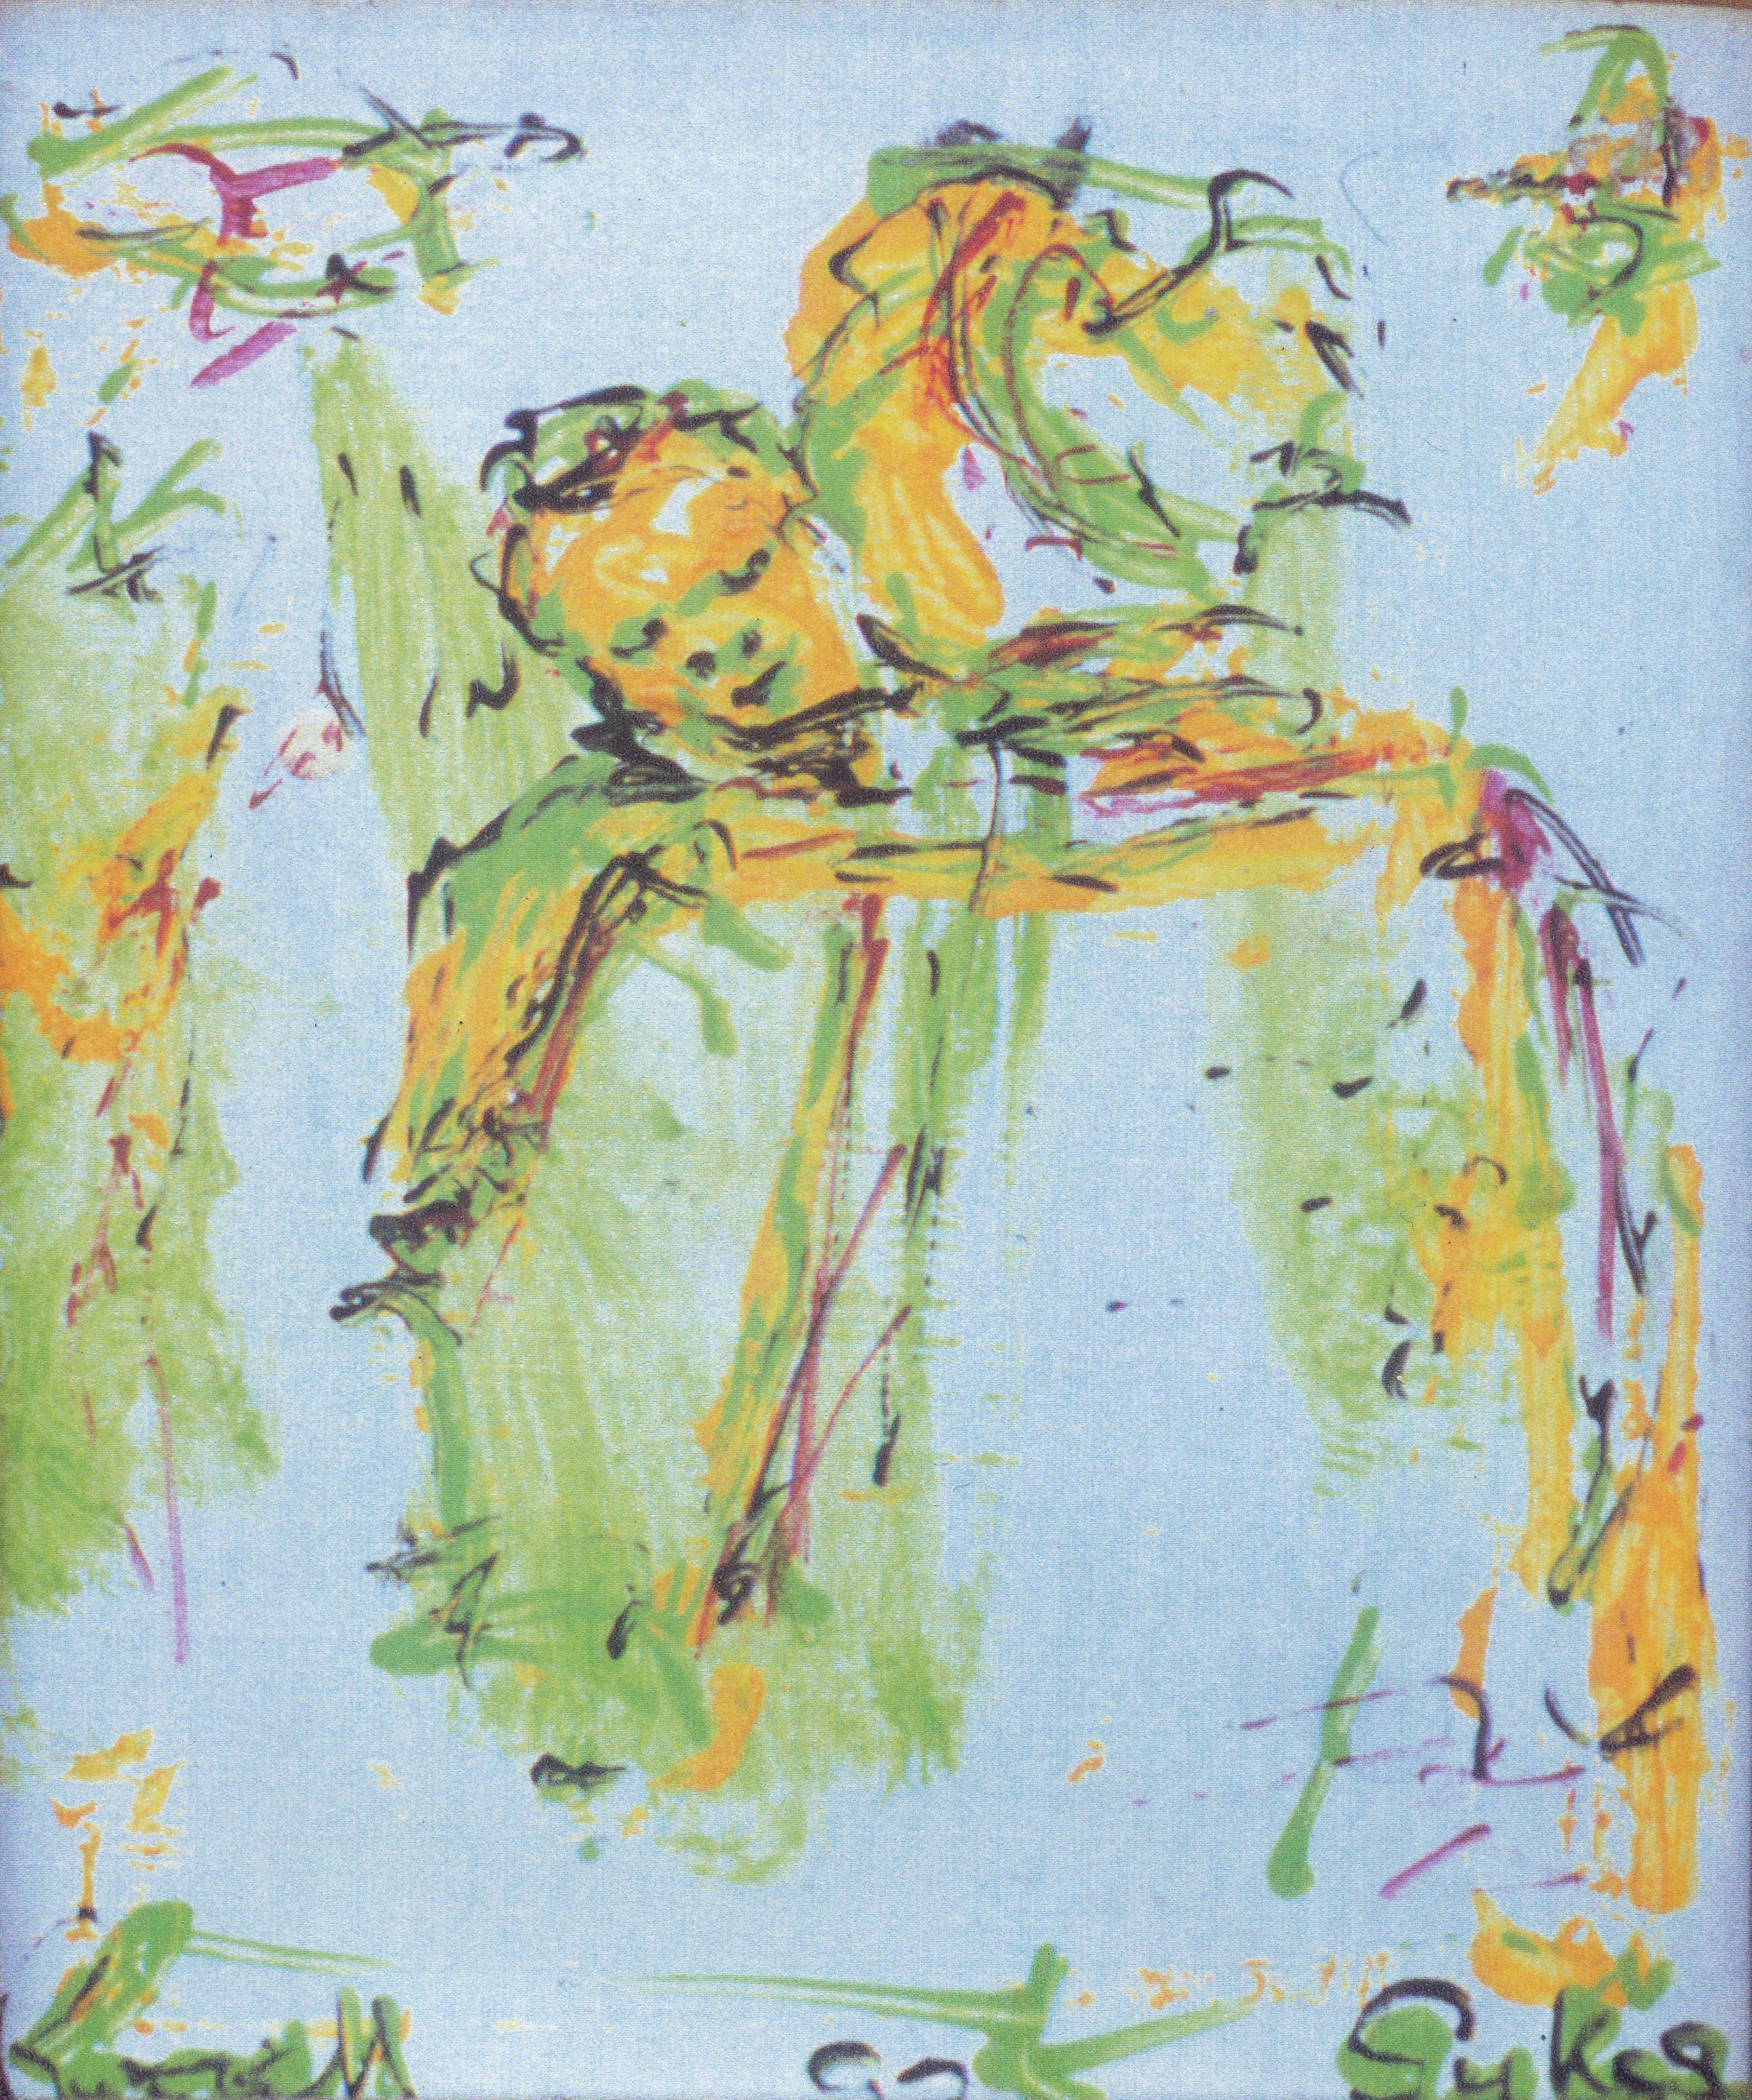 In Color, Mother and Child, 1992